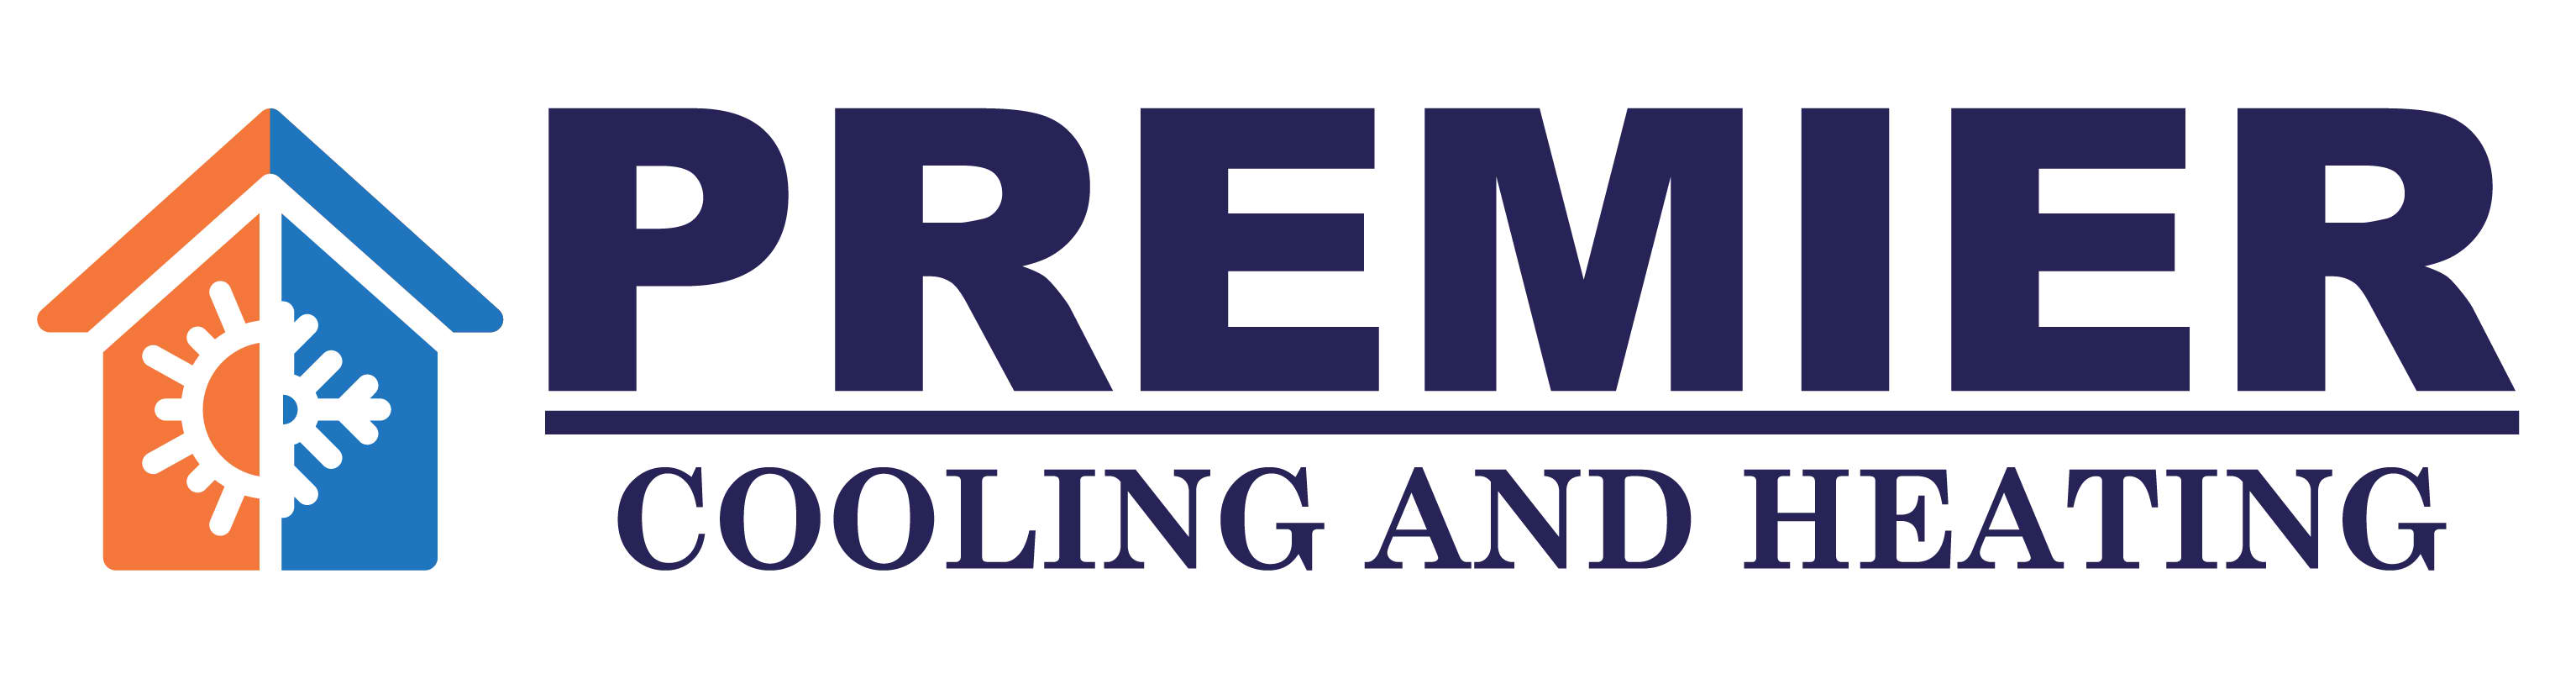 Premier Cooling and Heating